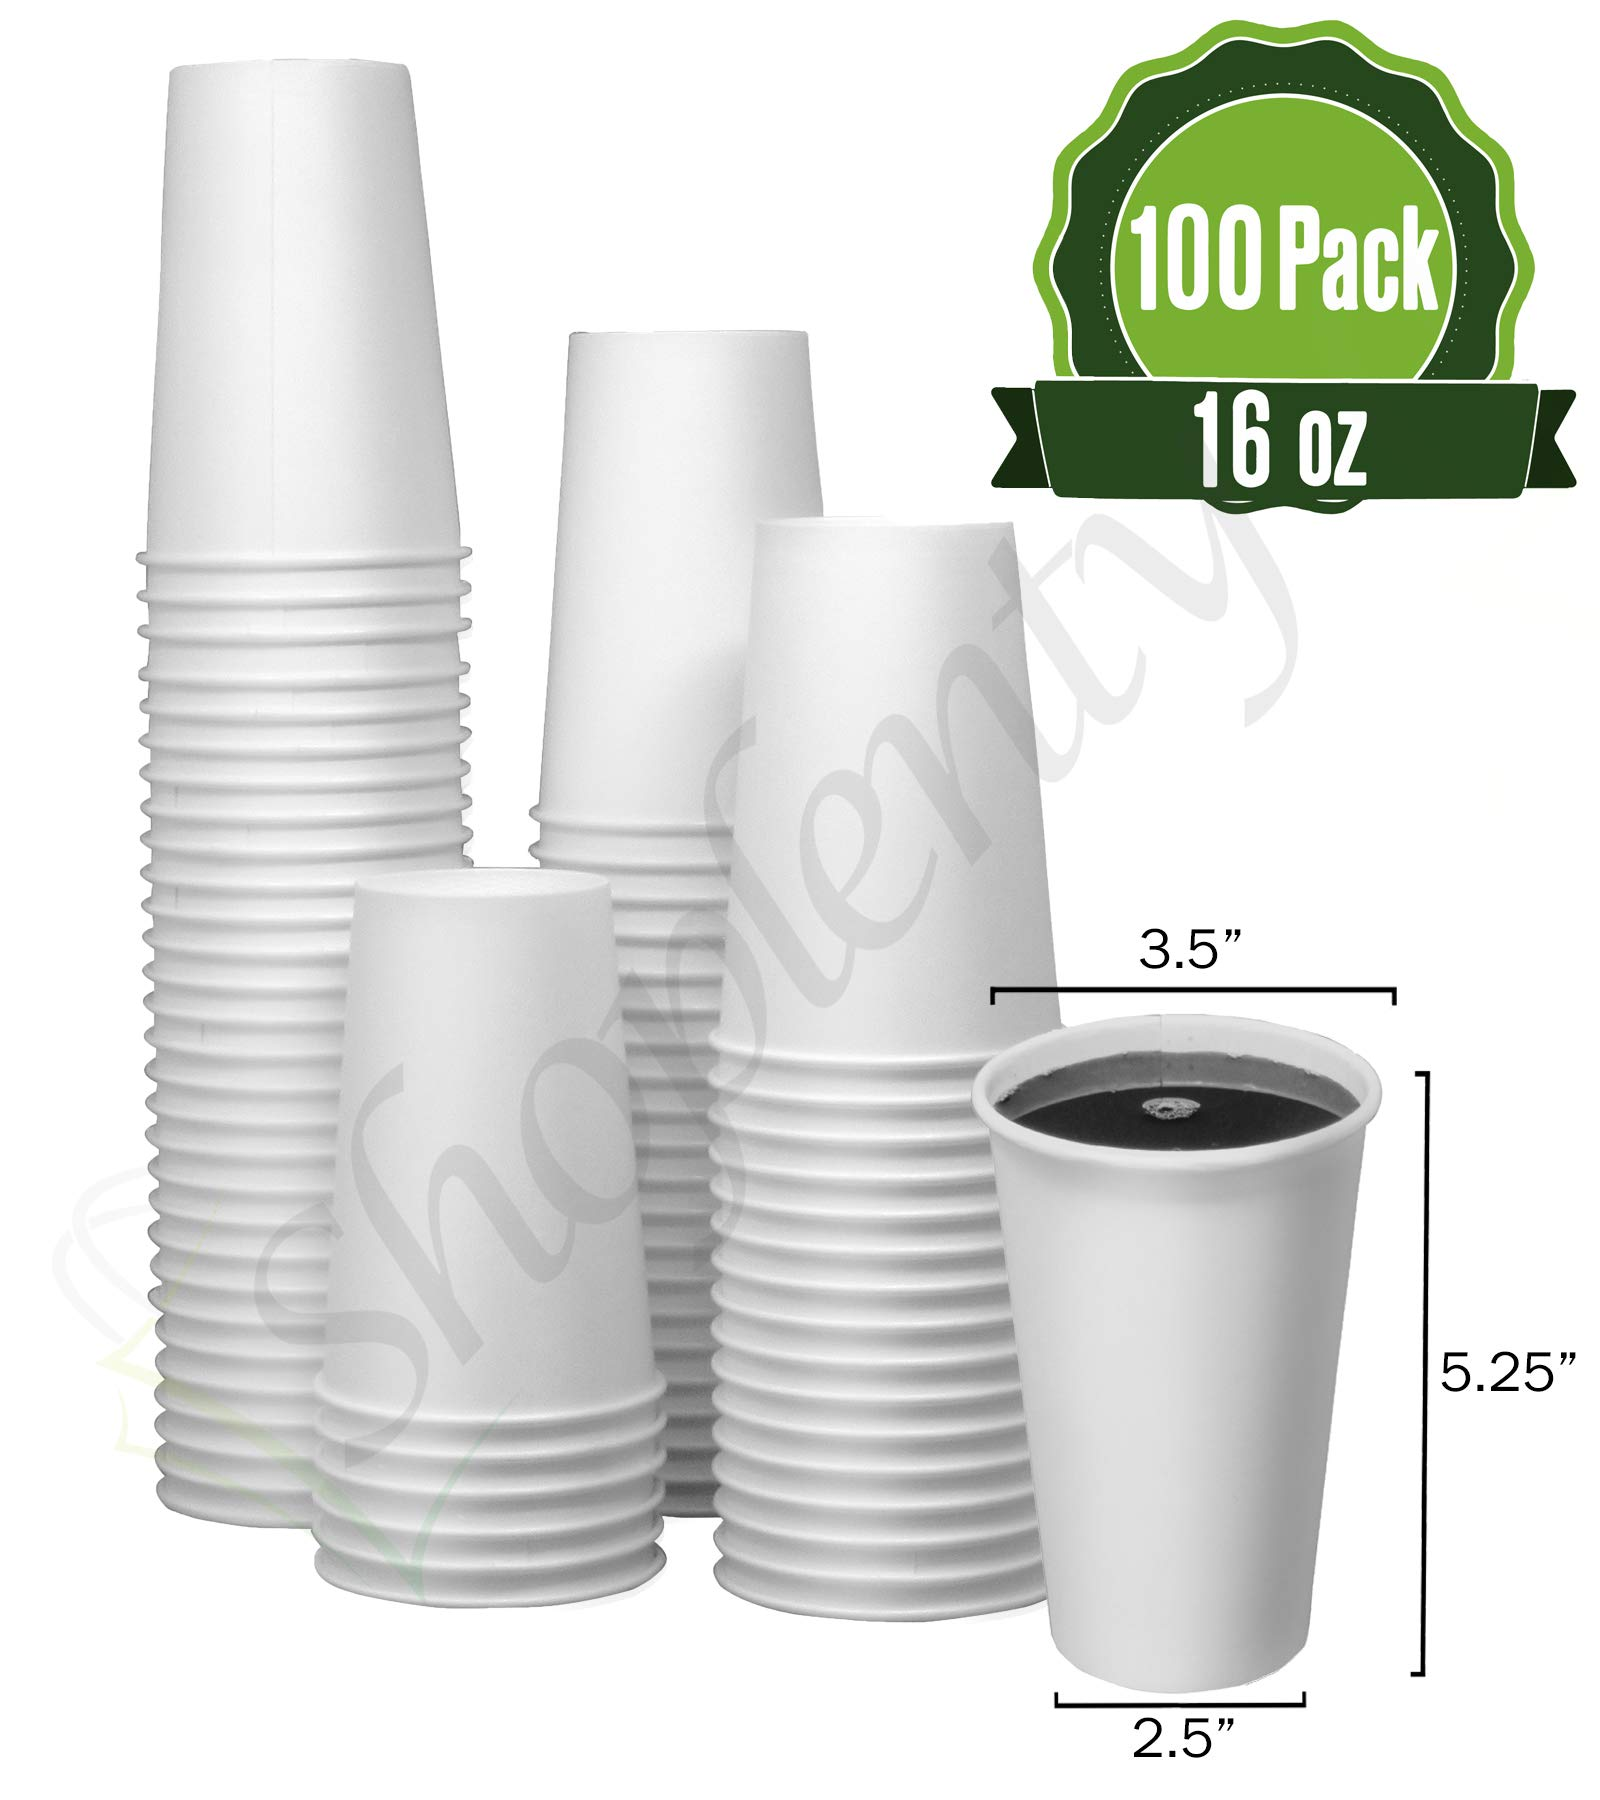 Hot White Paper Coffee Cups [ 16oz - 100 Pack ] - Disposable Coffee Cups Ideal for Home, Office, Restaurant, and Togo